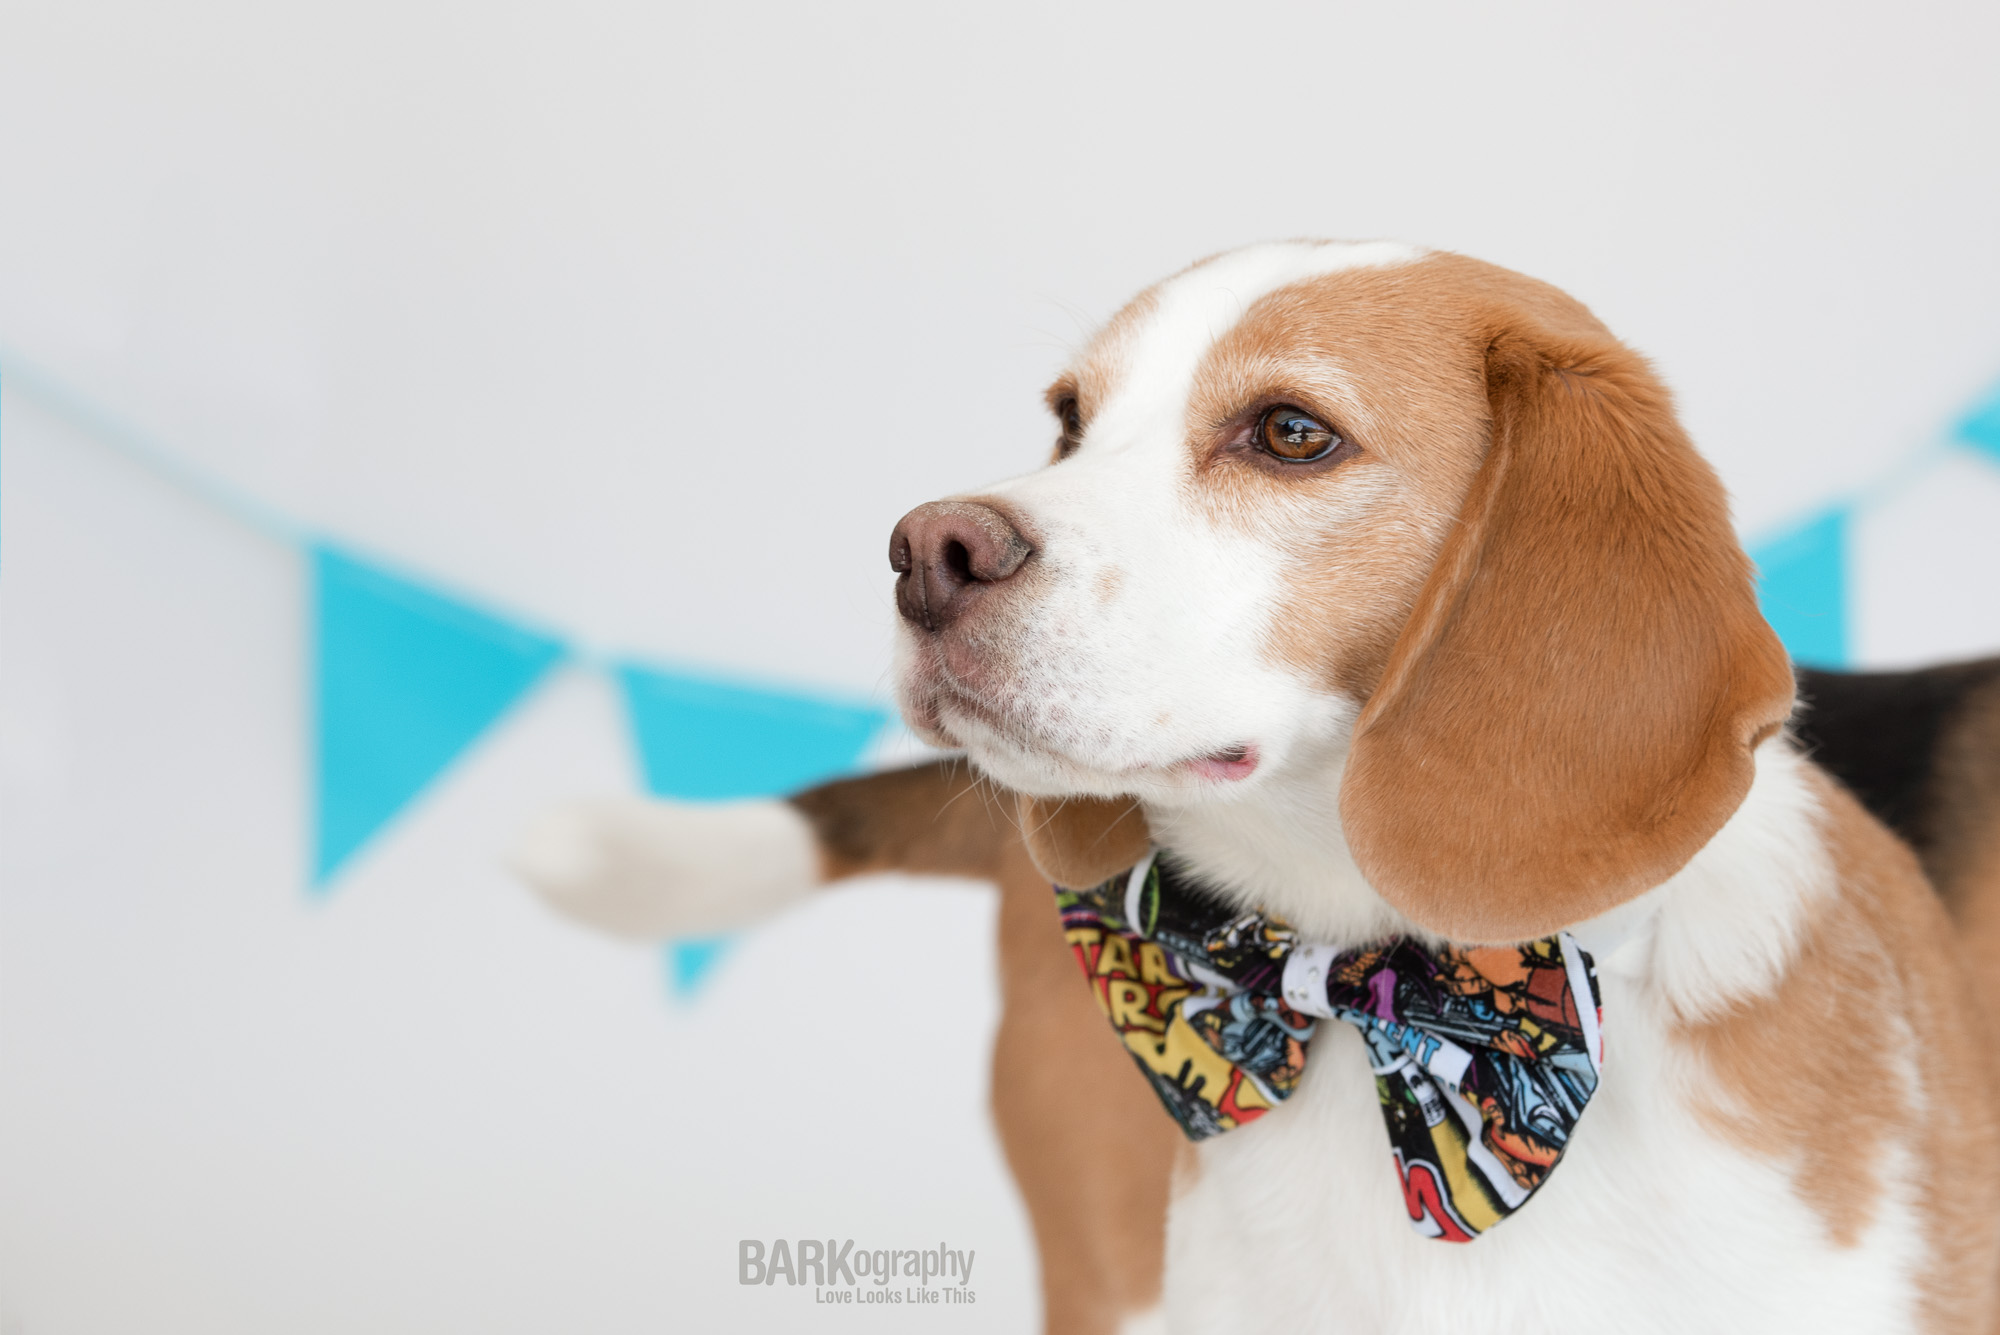 dog in bowtie birthday party decorations.JPG